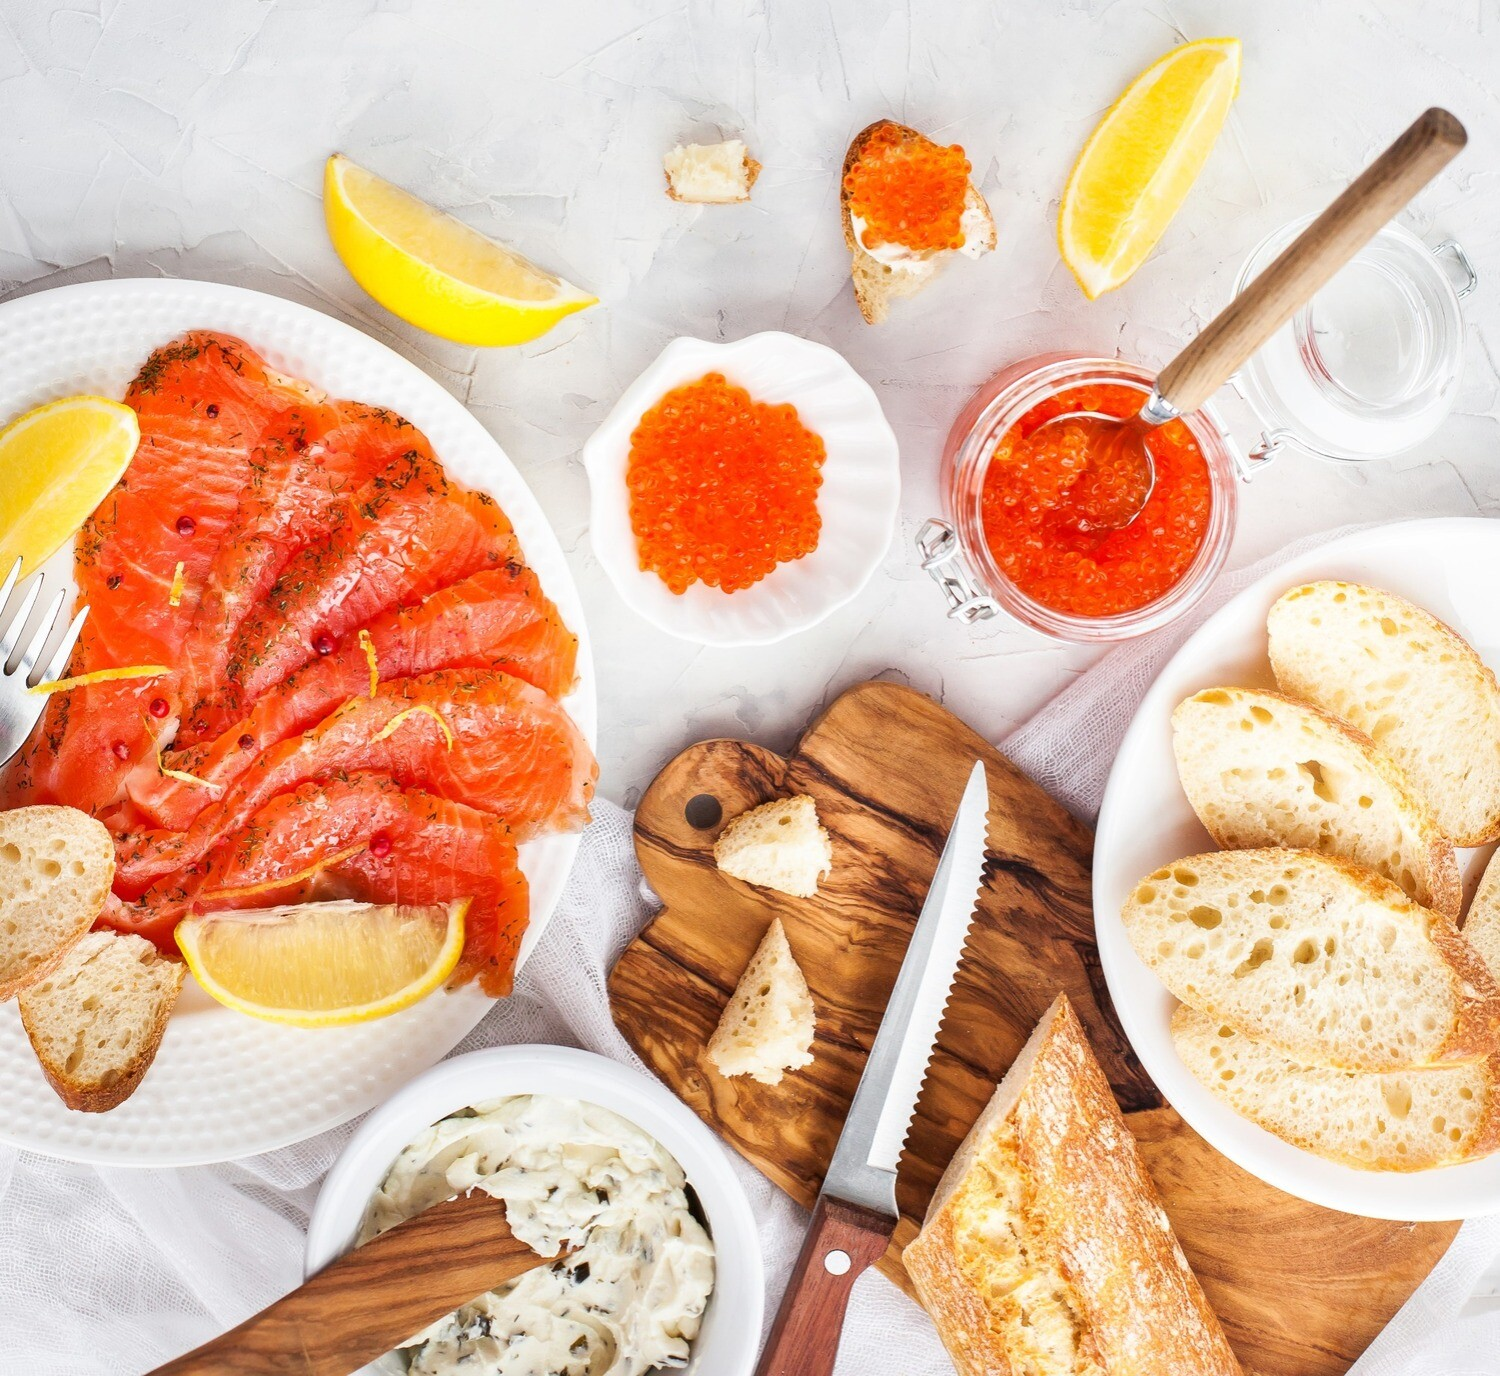 Smoked Salmon, Caviar and Cheese Platter